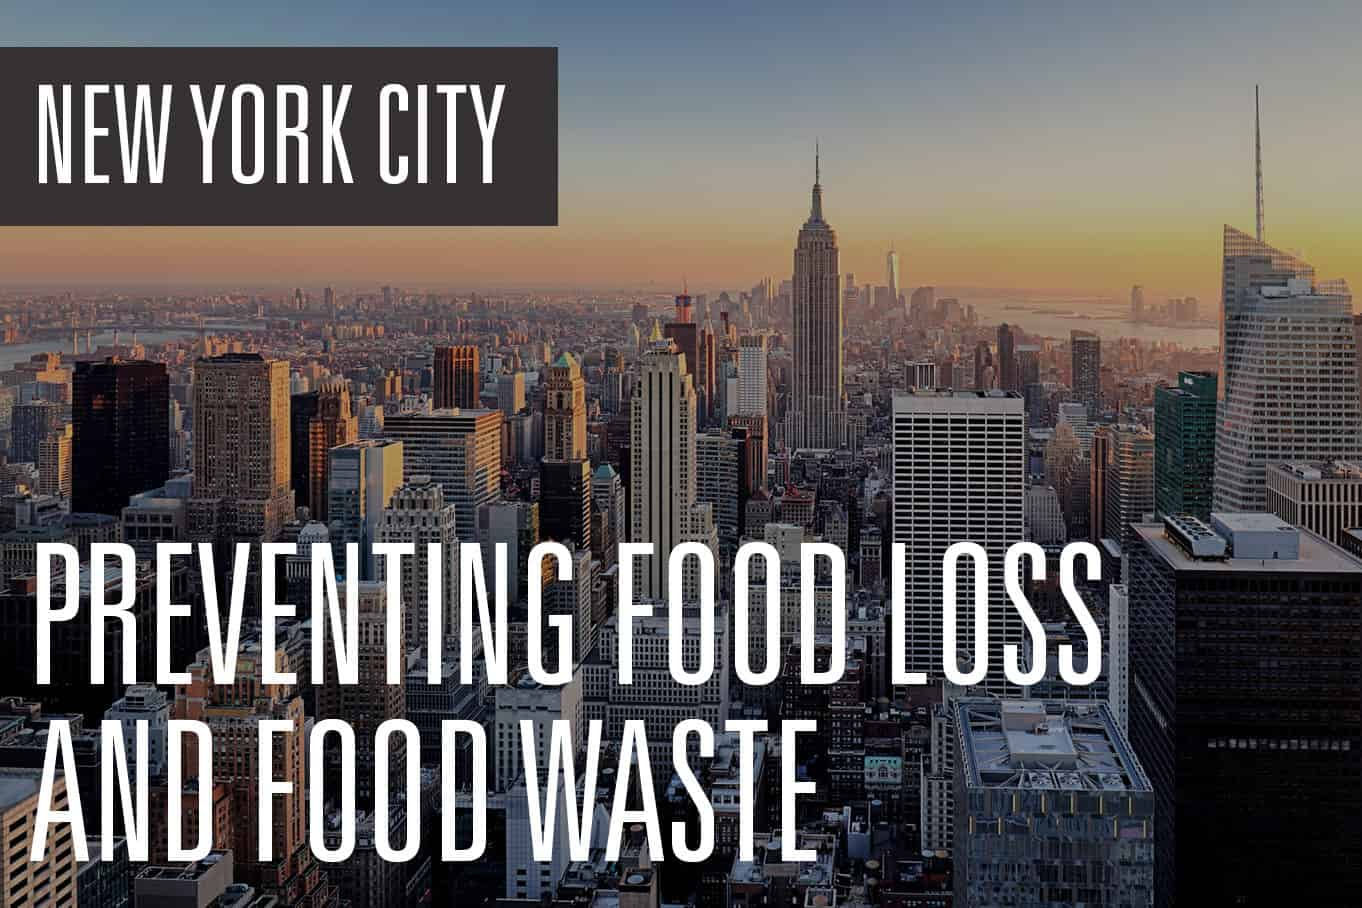 Food Tank, in partnership with The Fink Family Foundation and Blue Hill Restaurant, is hosting an intimate dinner discussion around solutions to food waste.